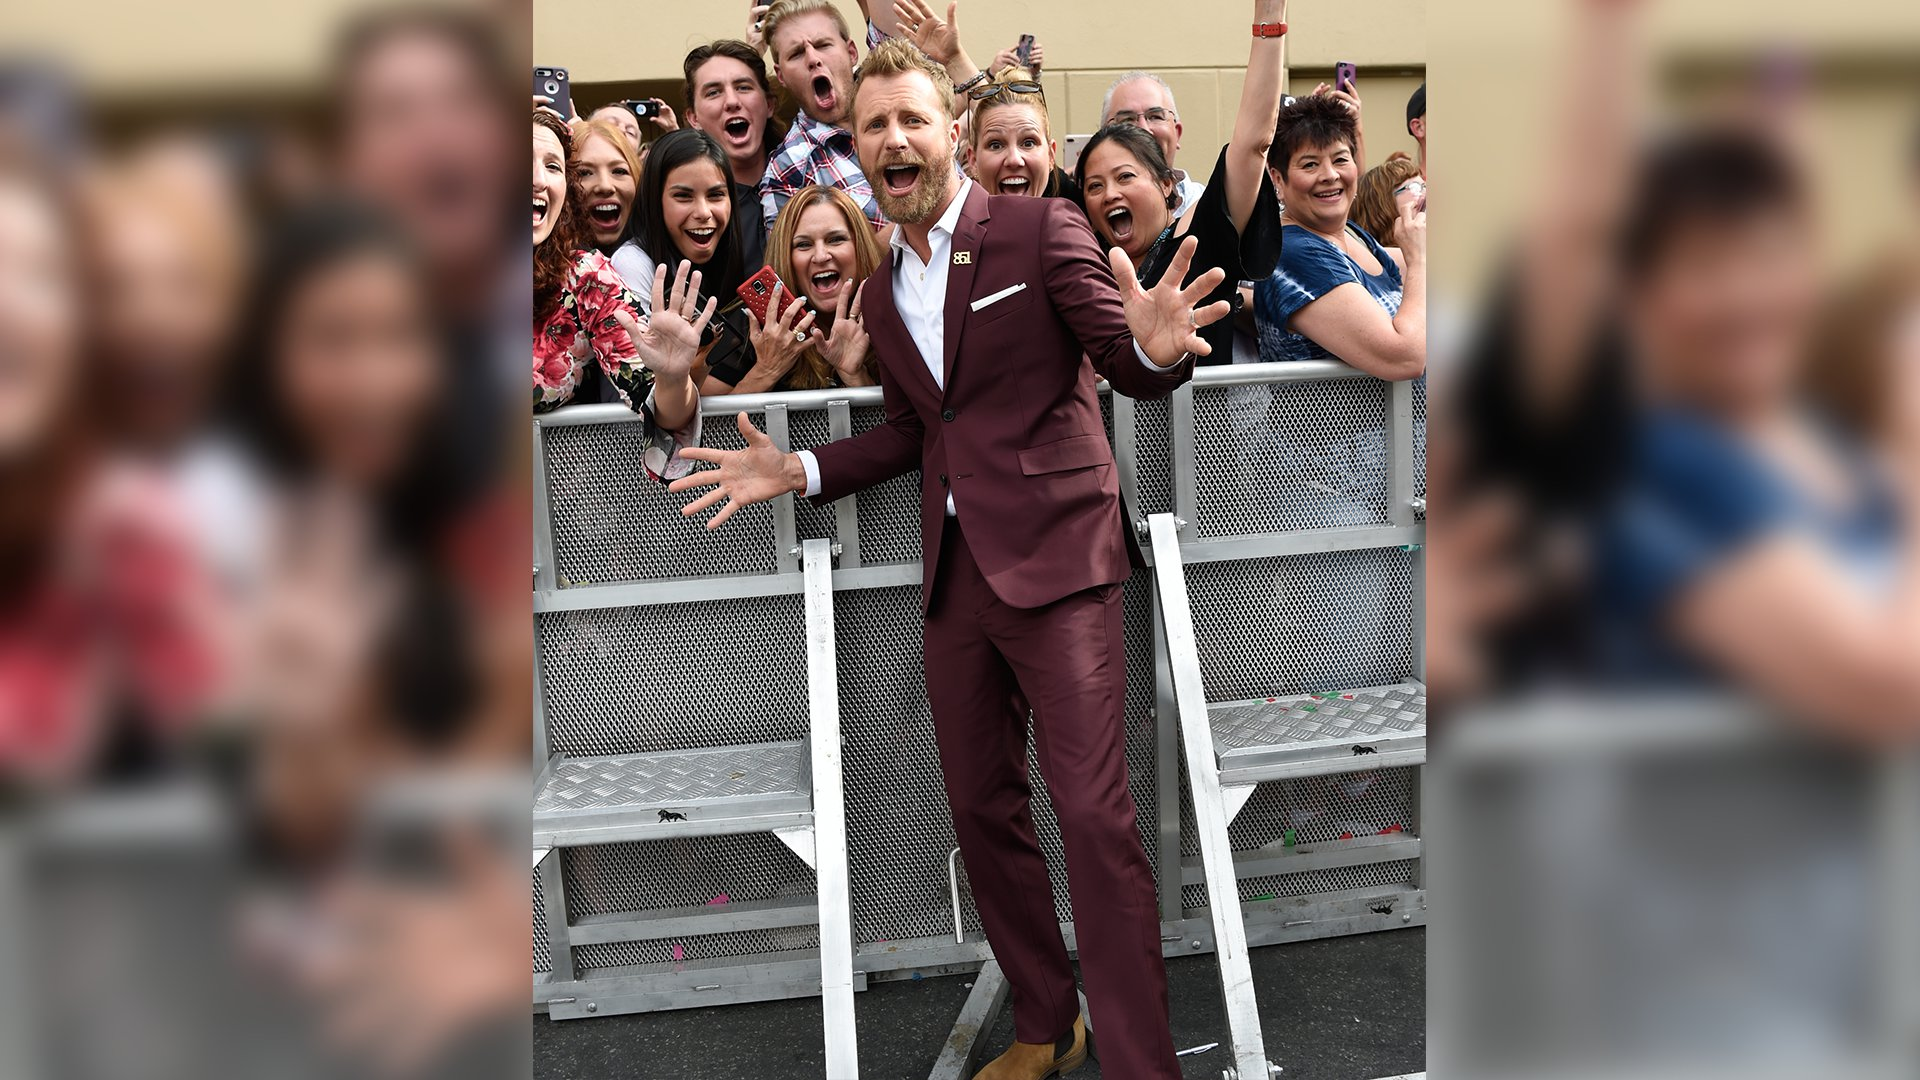 Dierks Bentley can't help but bust out a couple jazz hands while posing with eager fans.